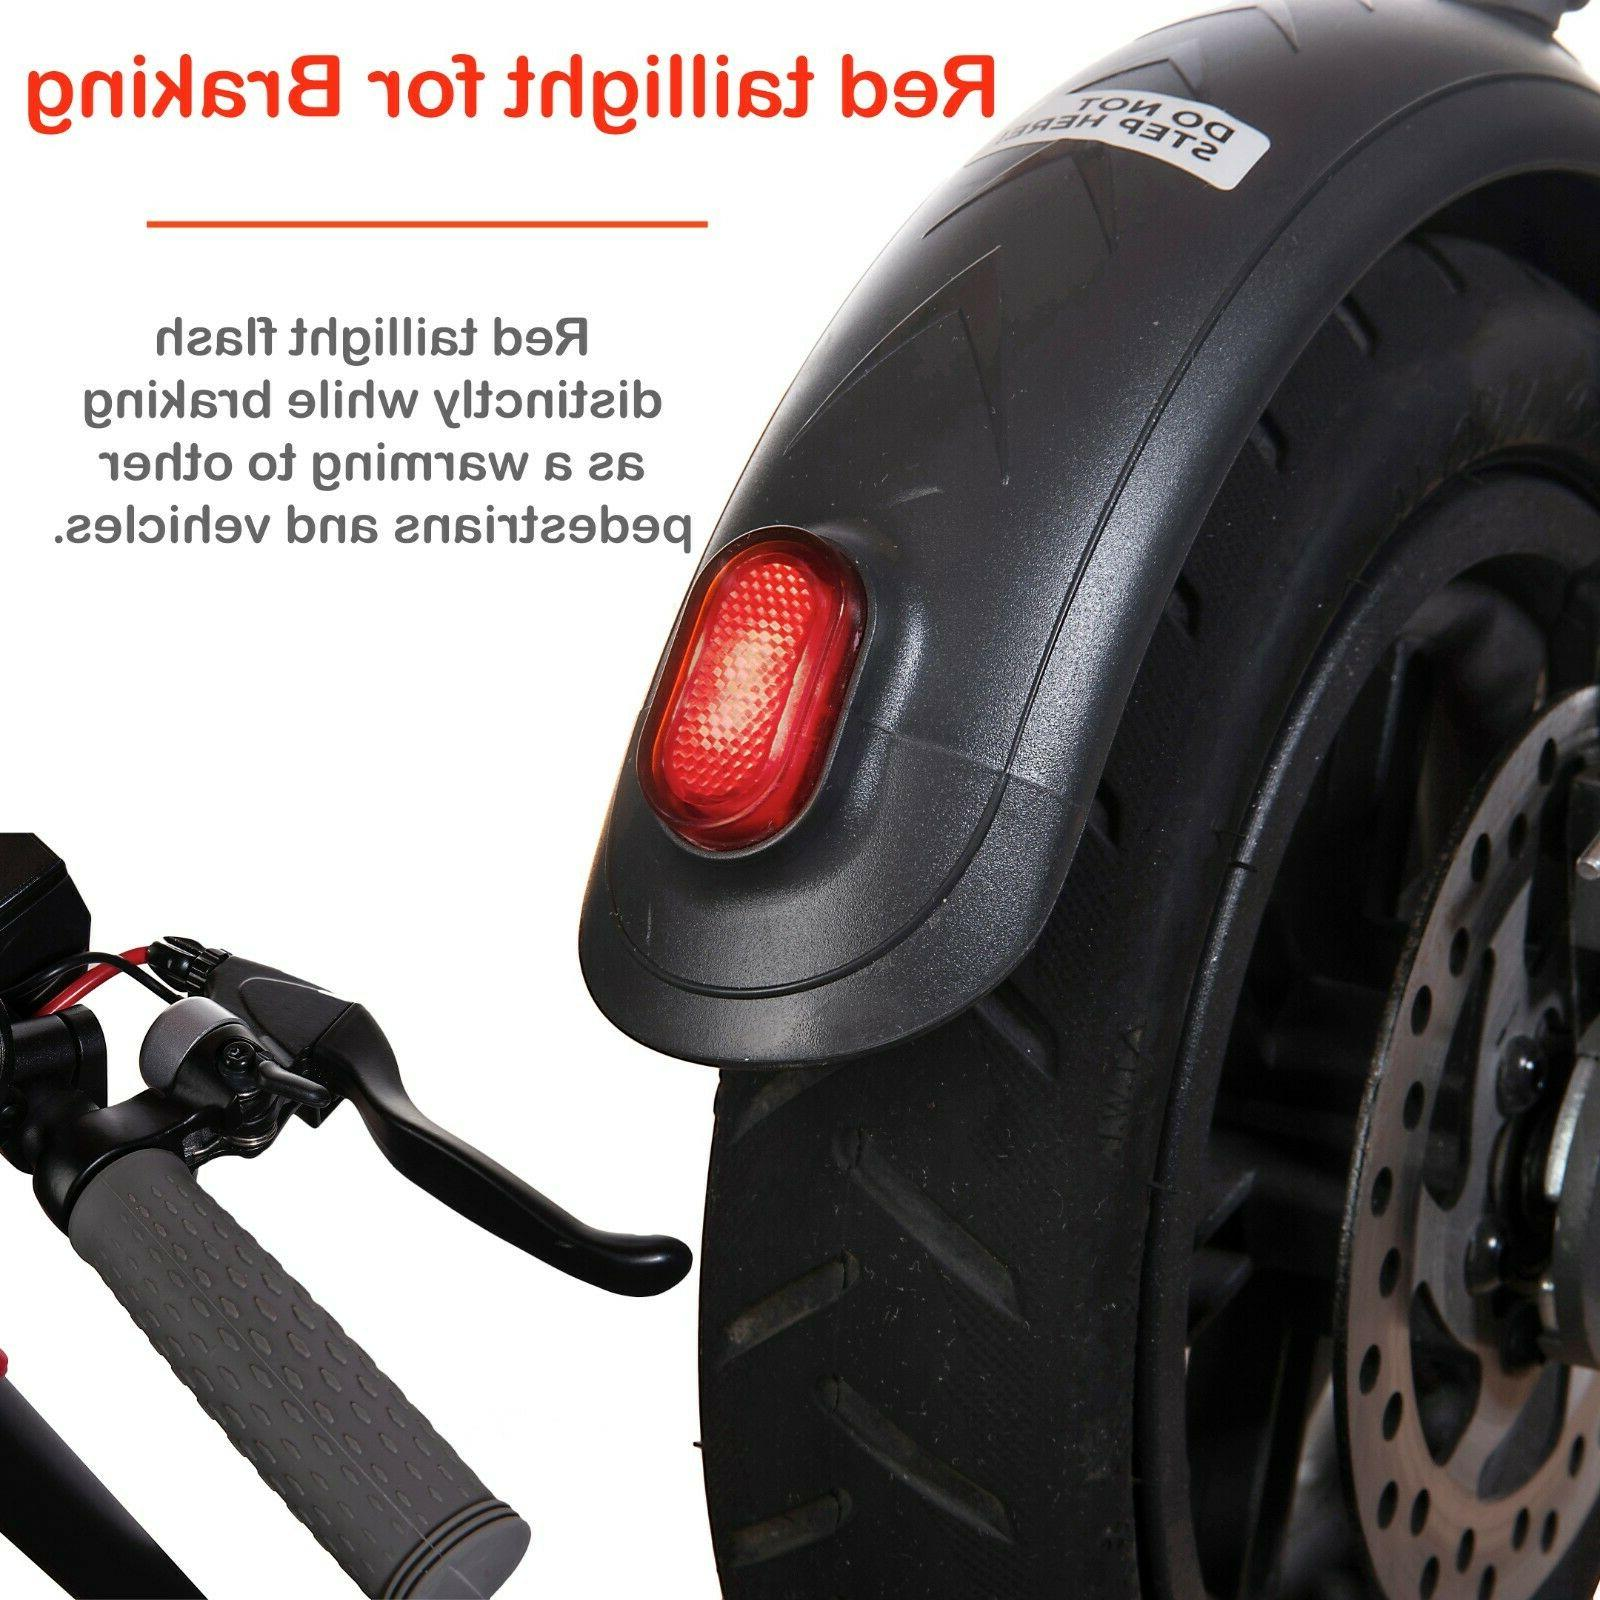 300W Electric Foldable Scooter, 15.8 Control